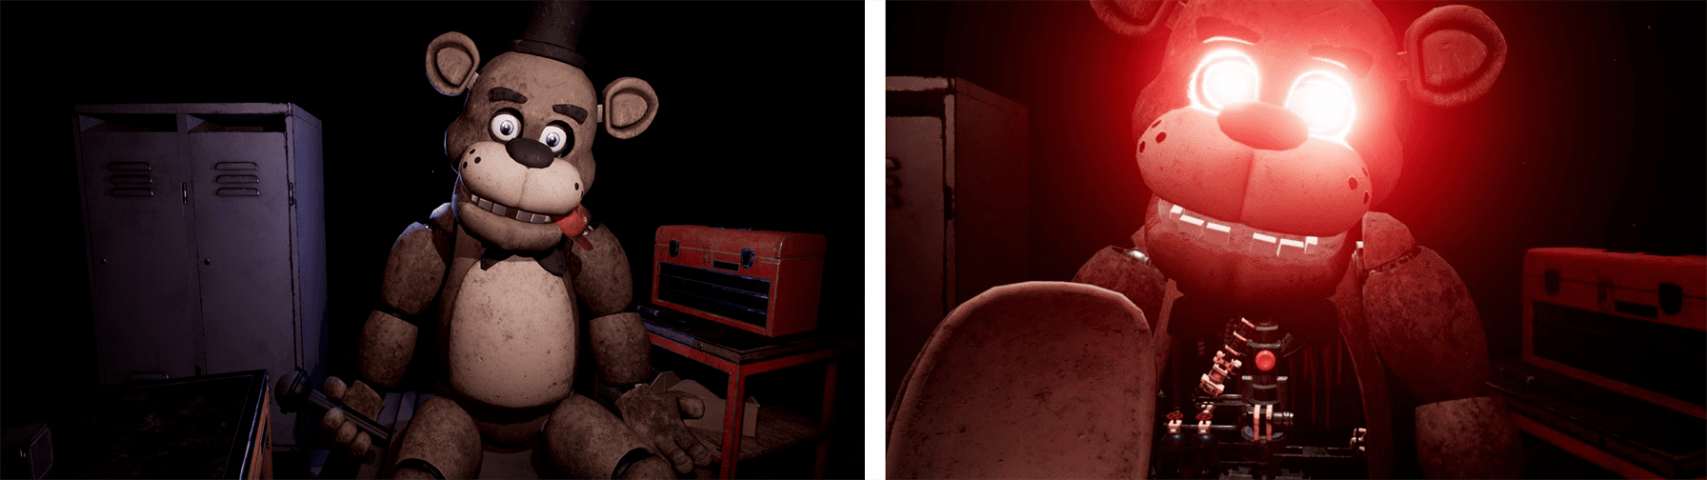 fnaf-help-wanted-install.png